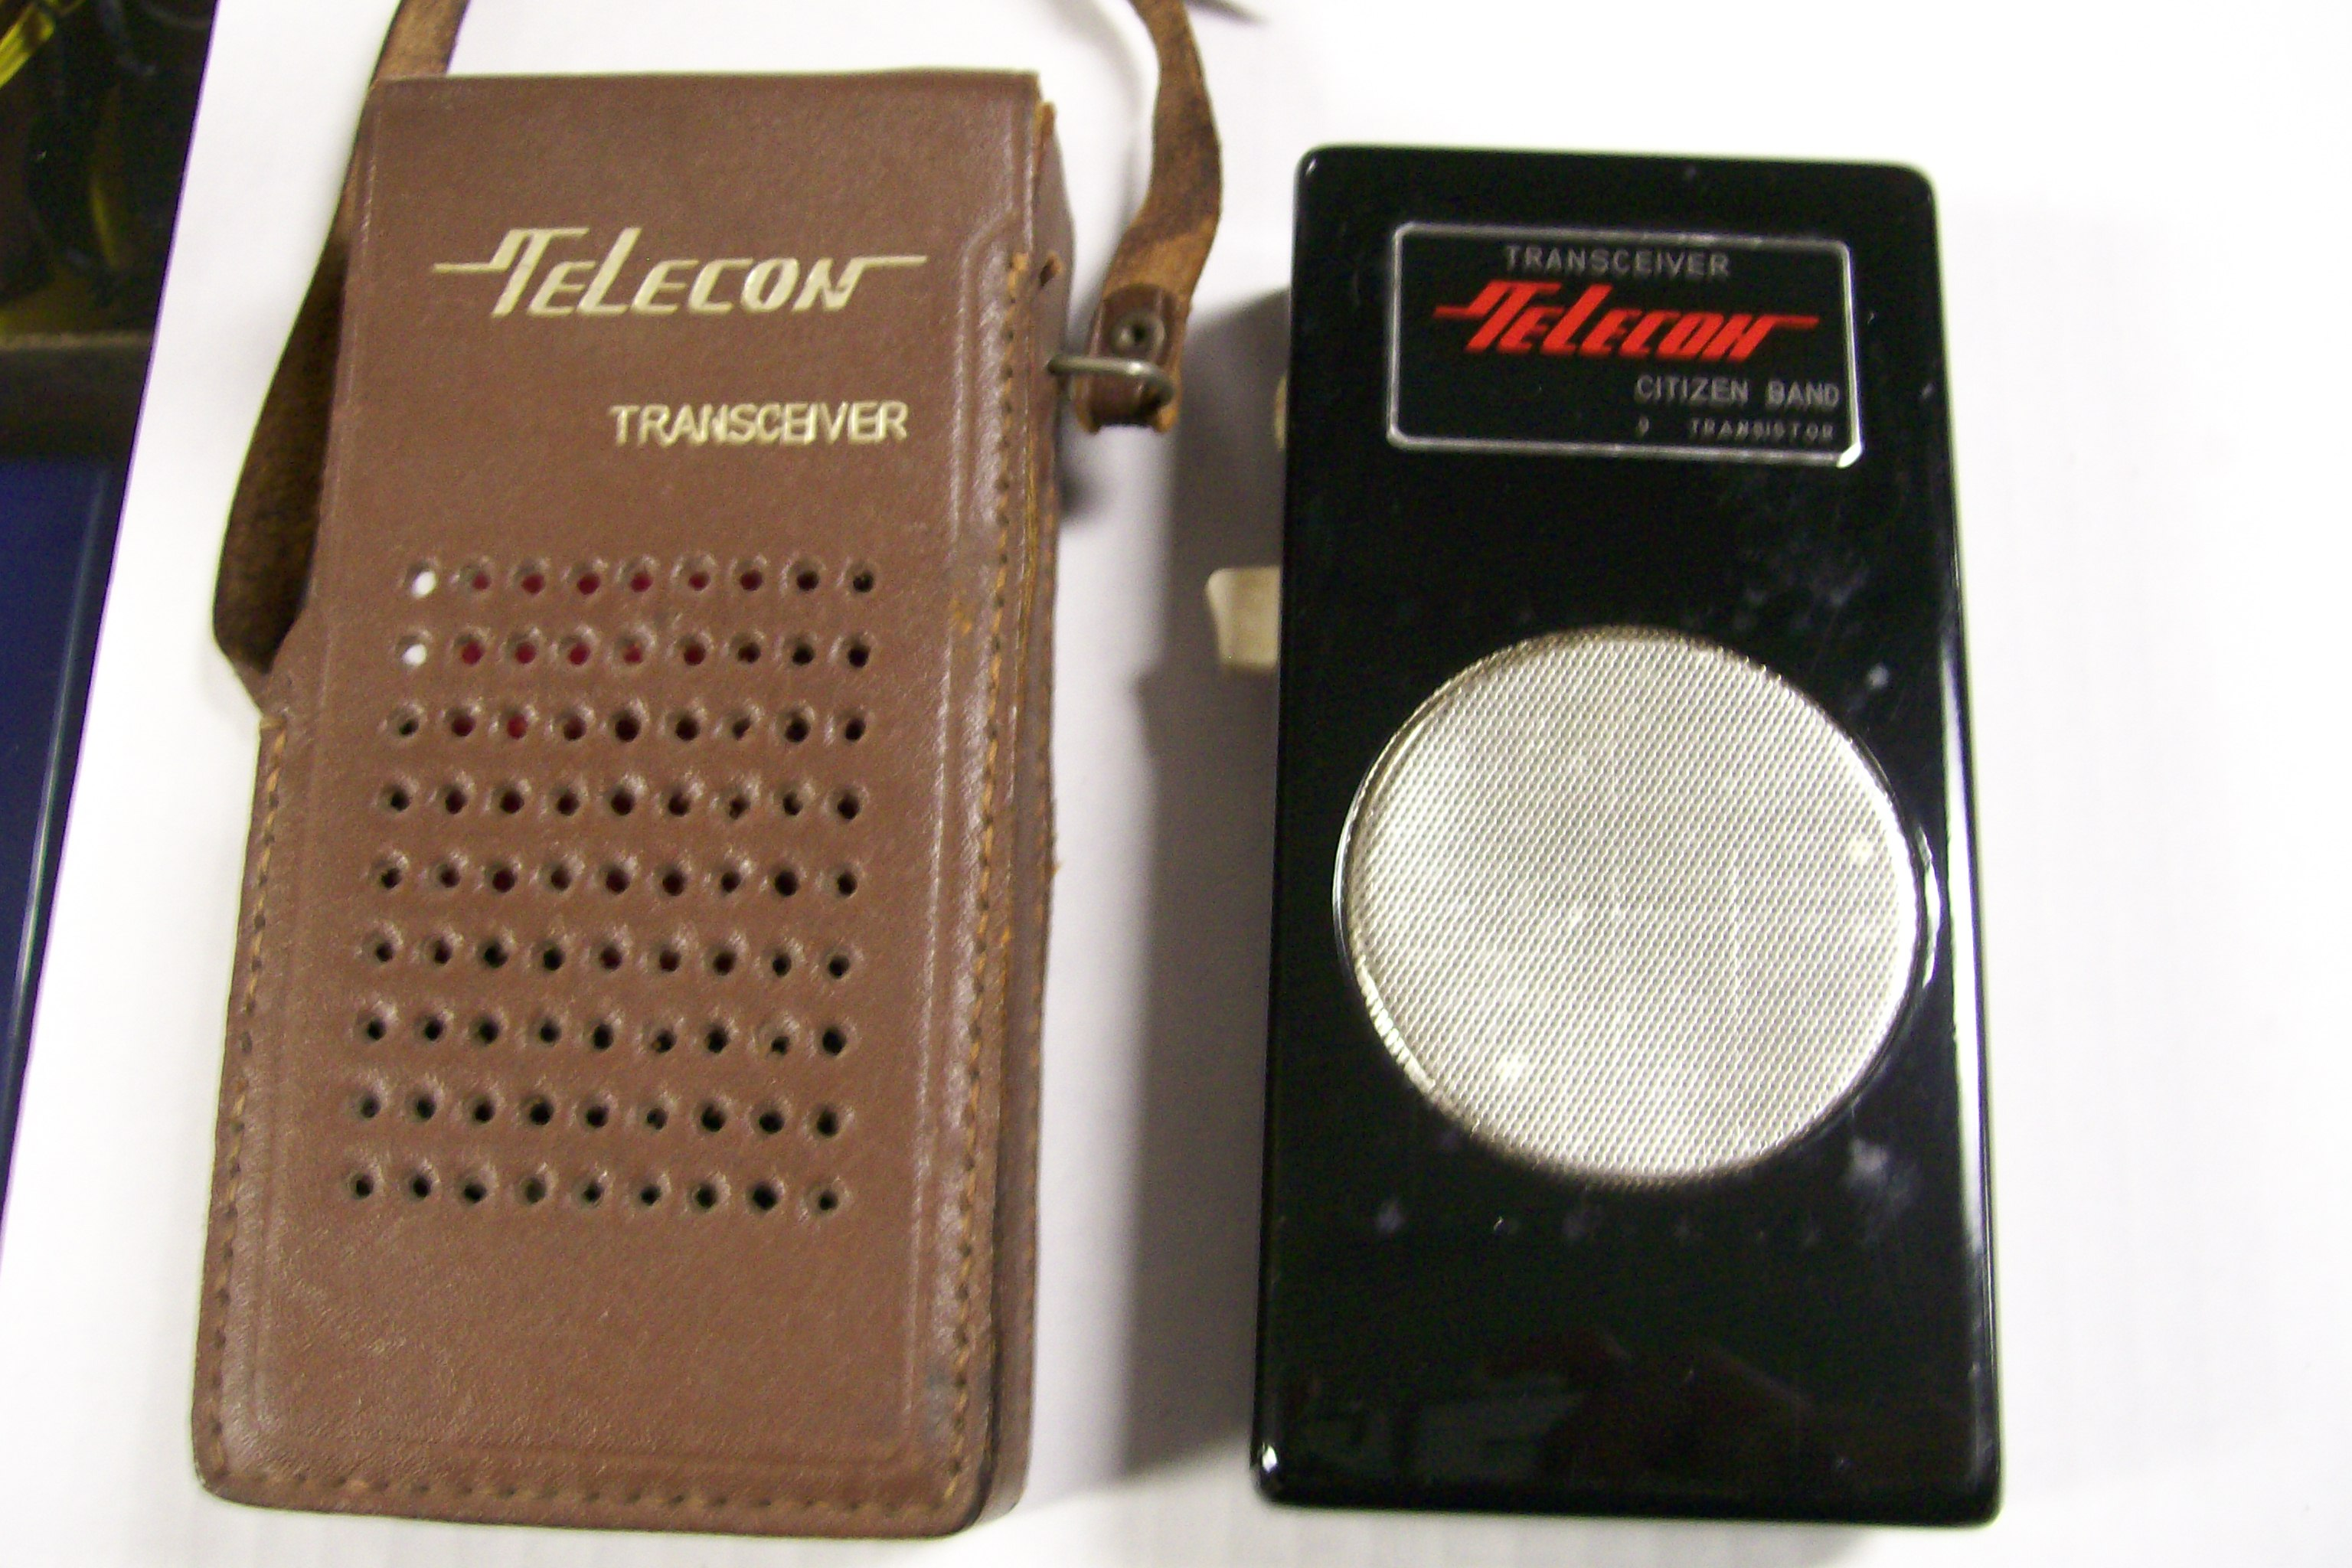 Telecon Transceiver Citizen Band 9 Transistor With case